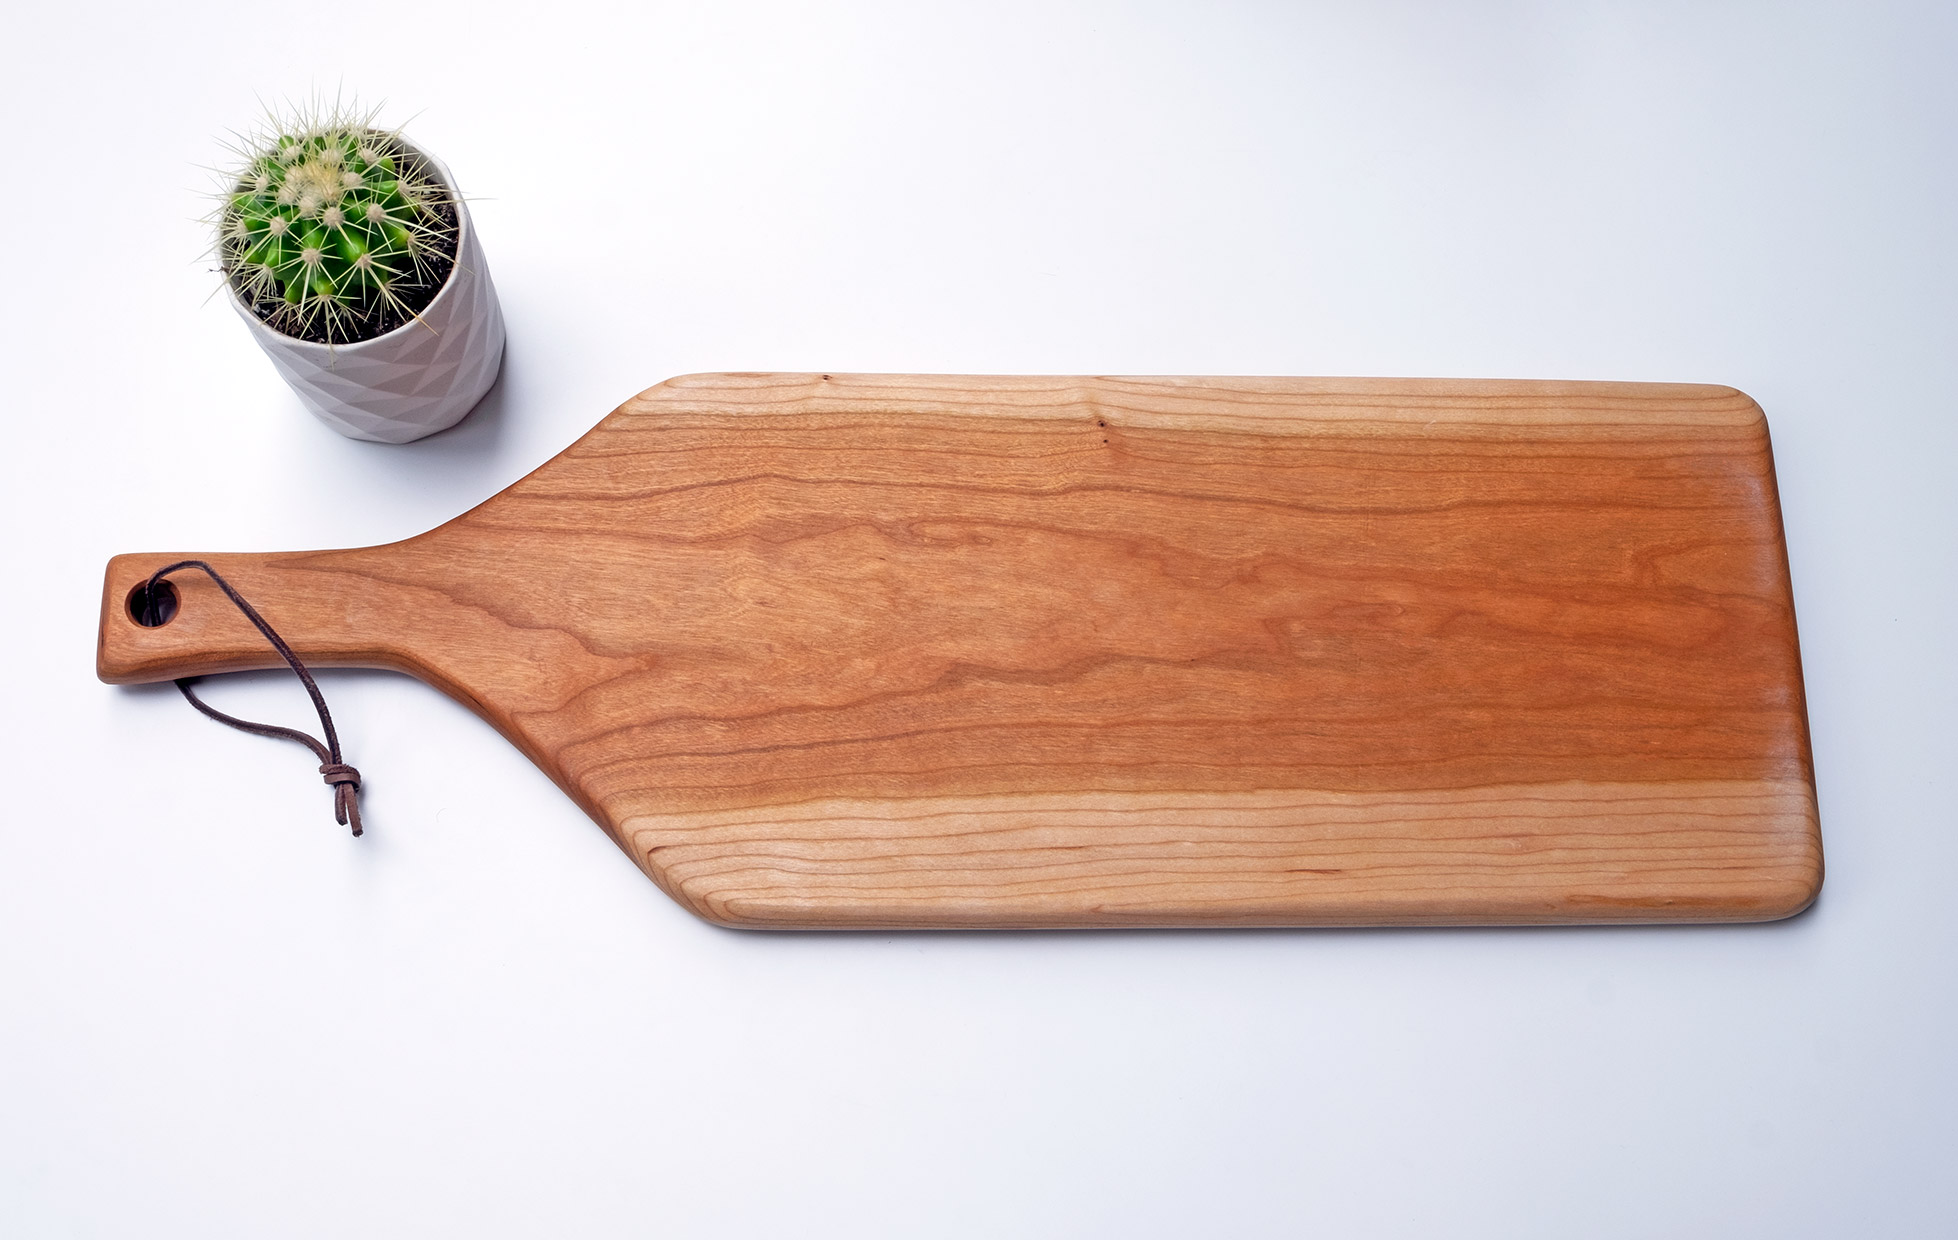 Black Cherry board for serving food.